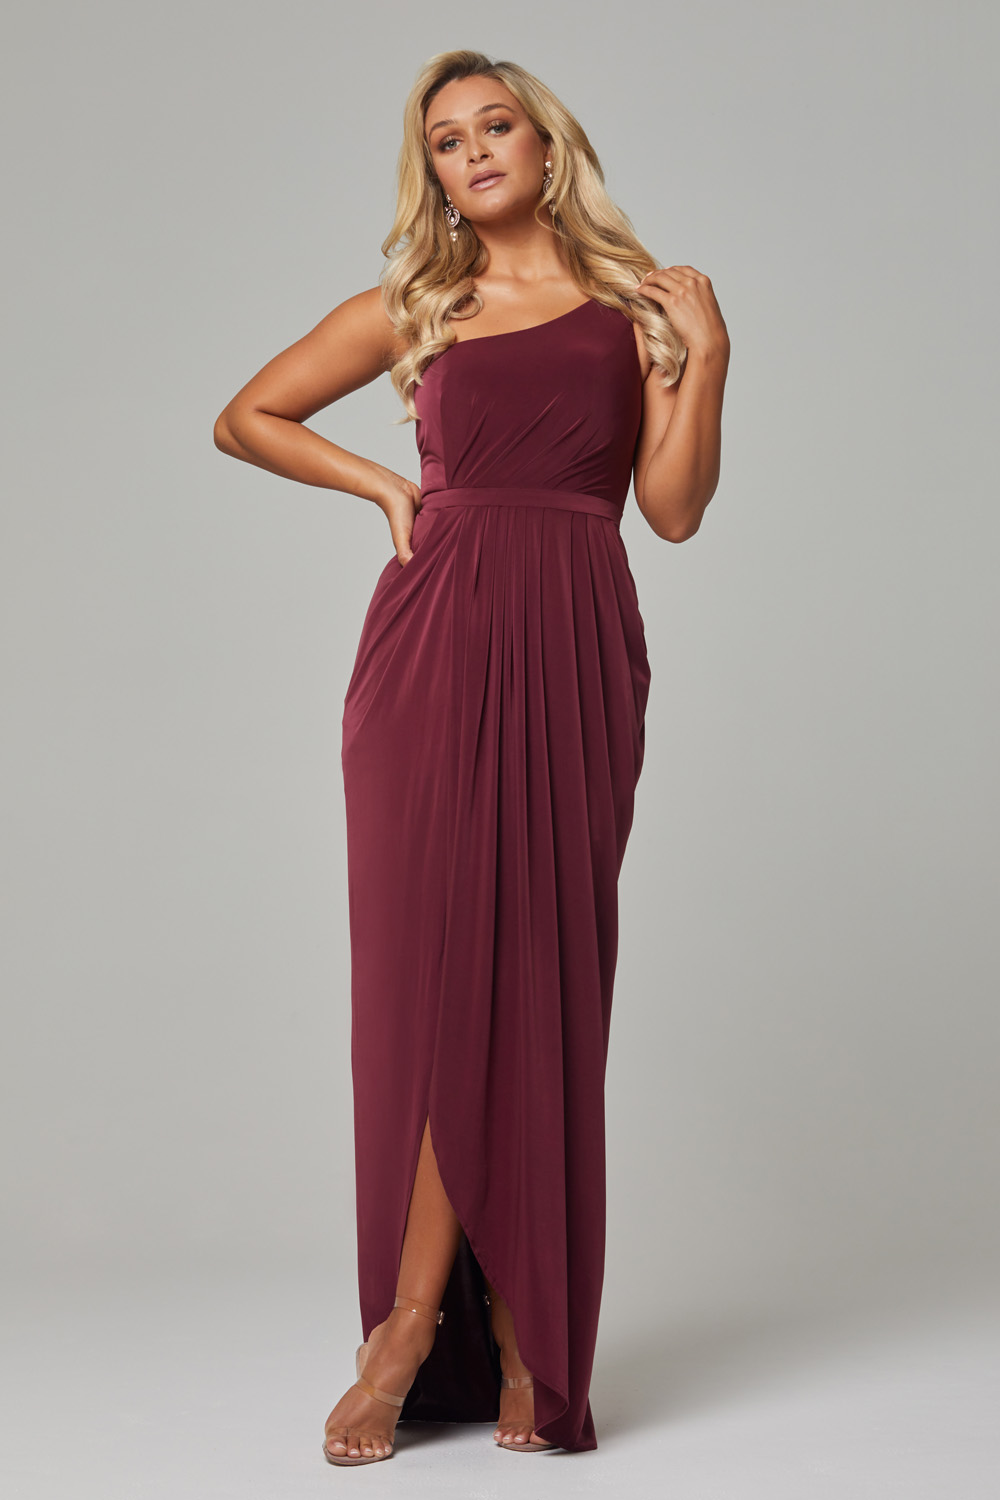 TO800 Wine Eloise dress